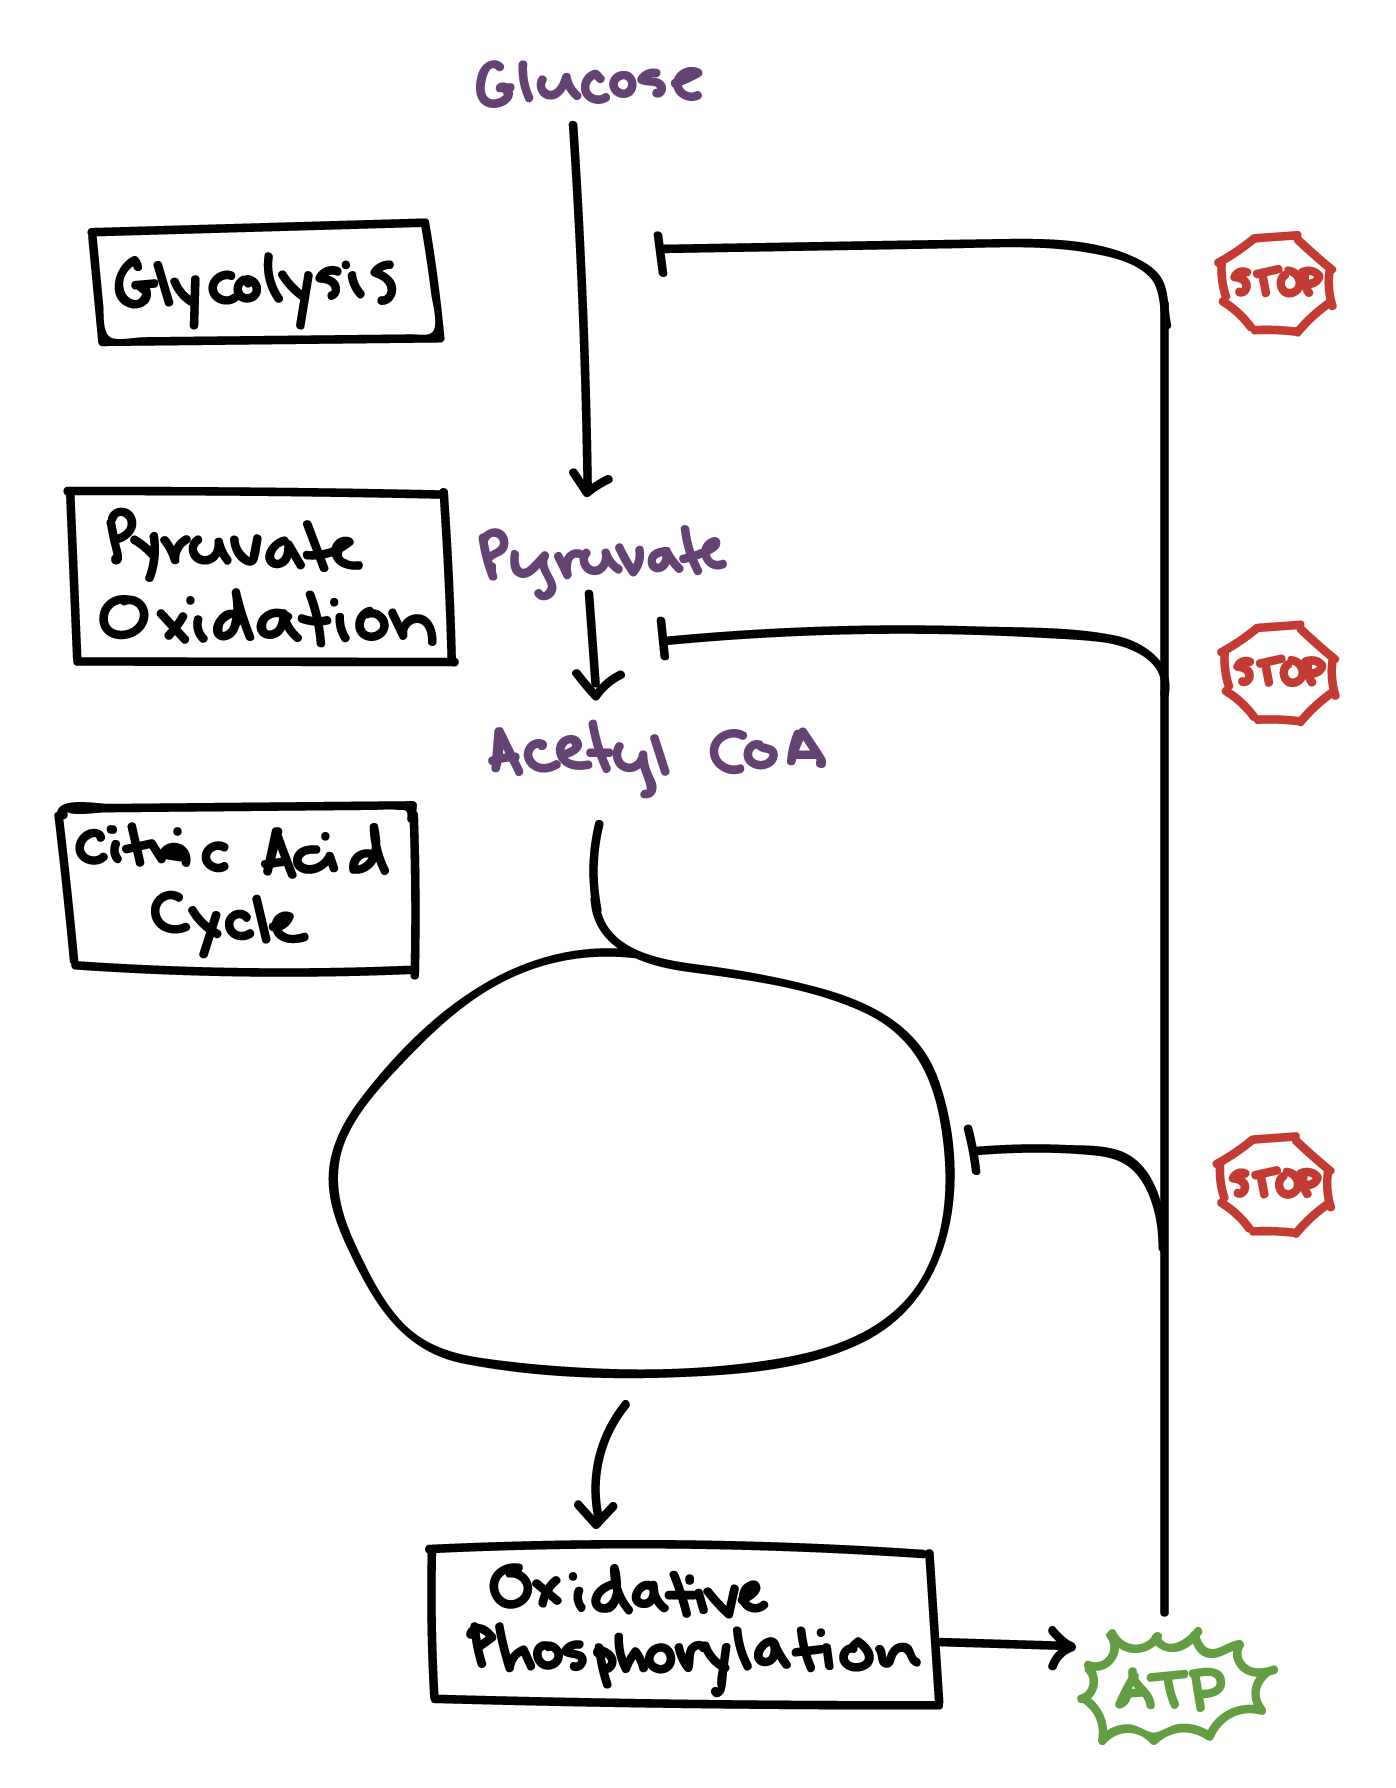 Fermentation and anaerobic respiration cellular respiration fermentation and anaerobic respiration cellular respiration article khan academy ccuart Image collections